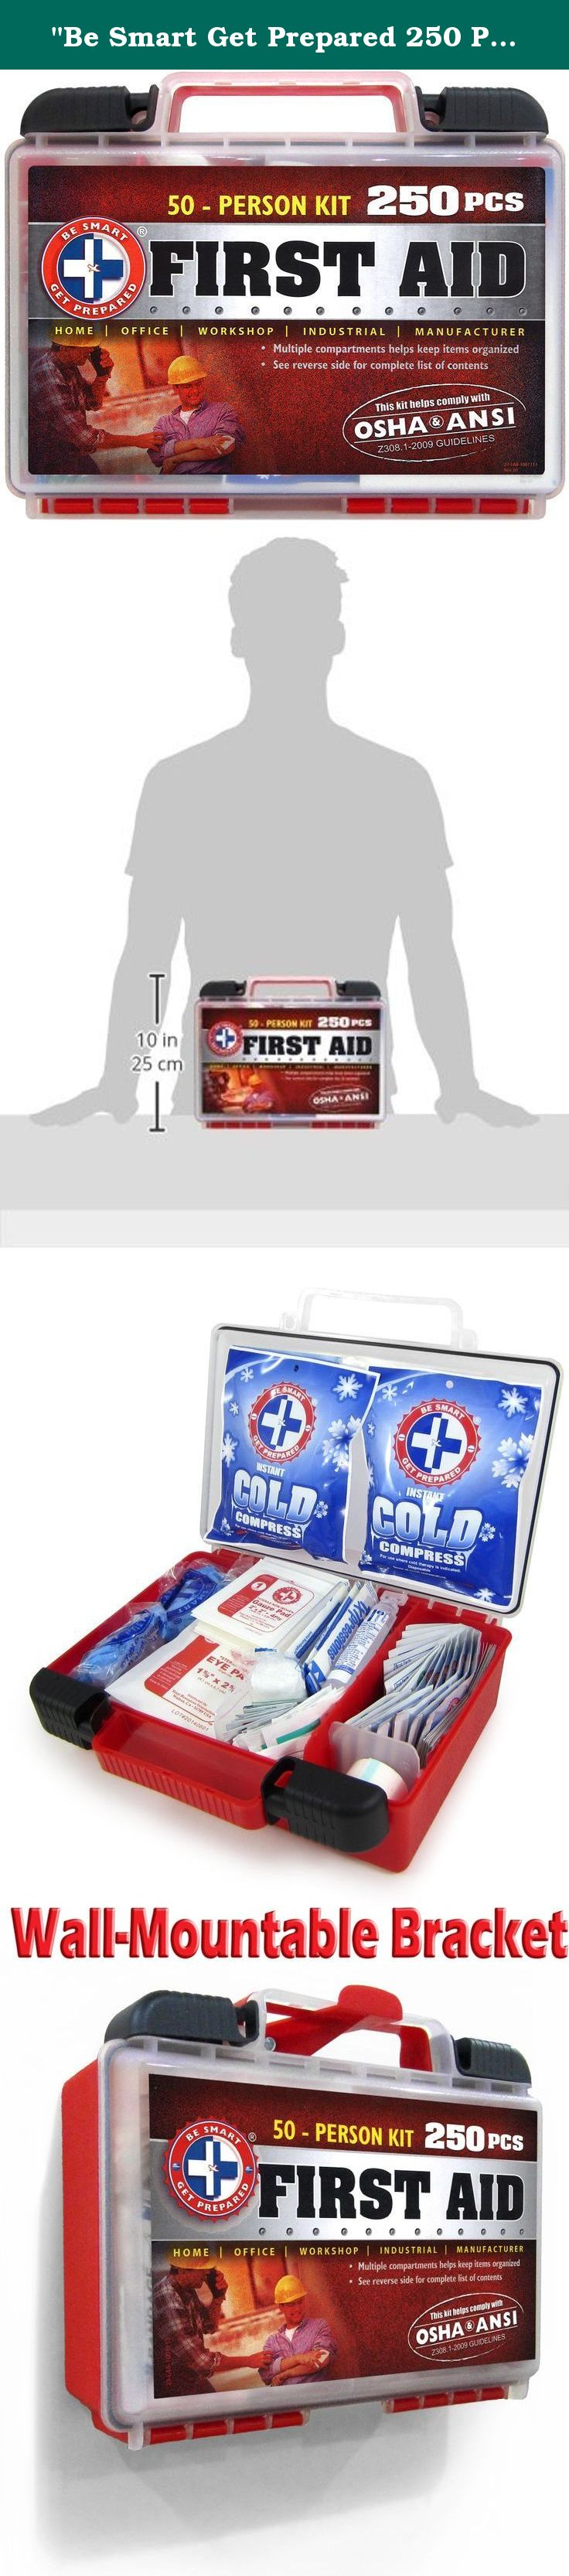 Be Smart Get Prepared 250 Piece First Aid Kit Exceeds Osha Ansi Standards For 50 People Office Home Car First Aid Kit Compartment Organizer Get Prepared